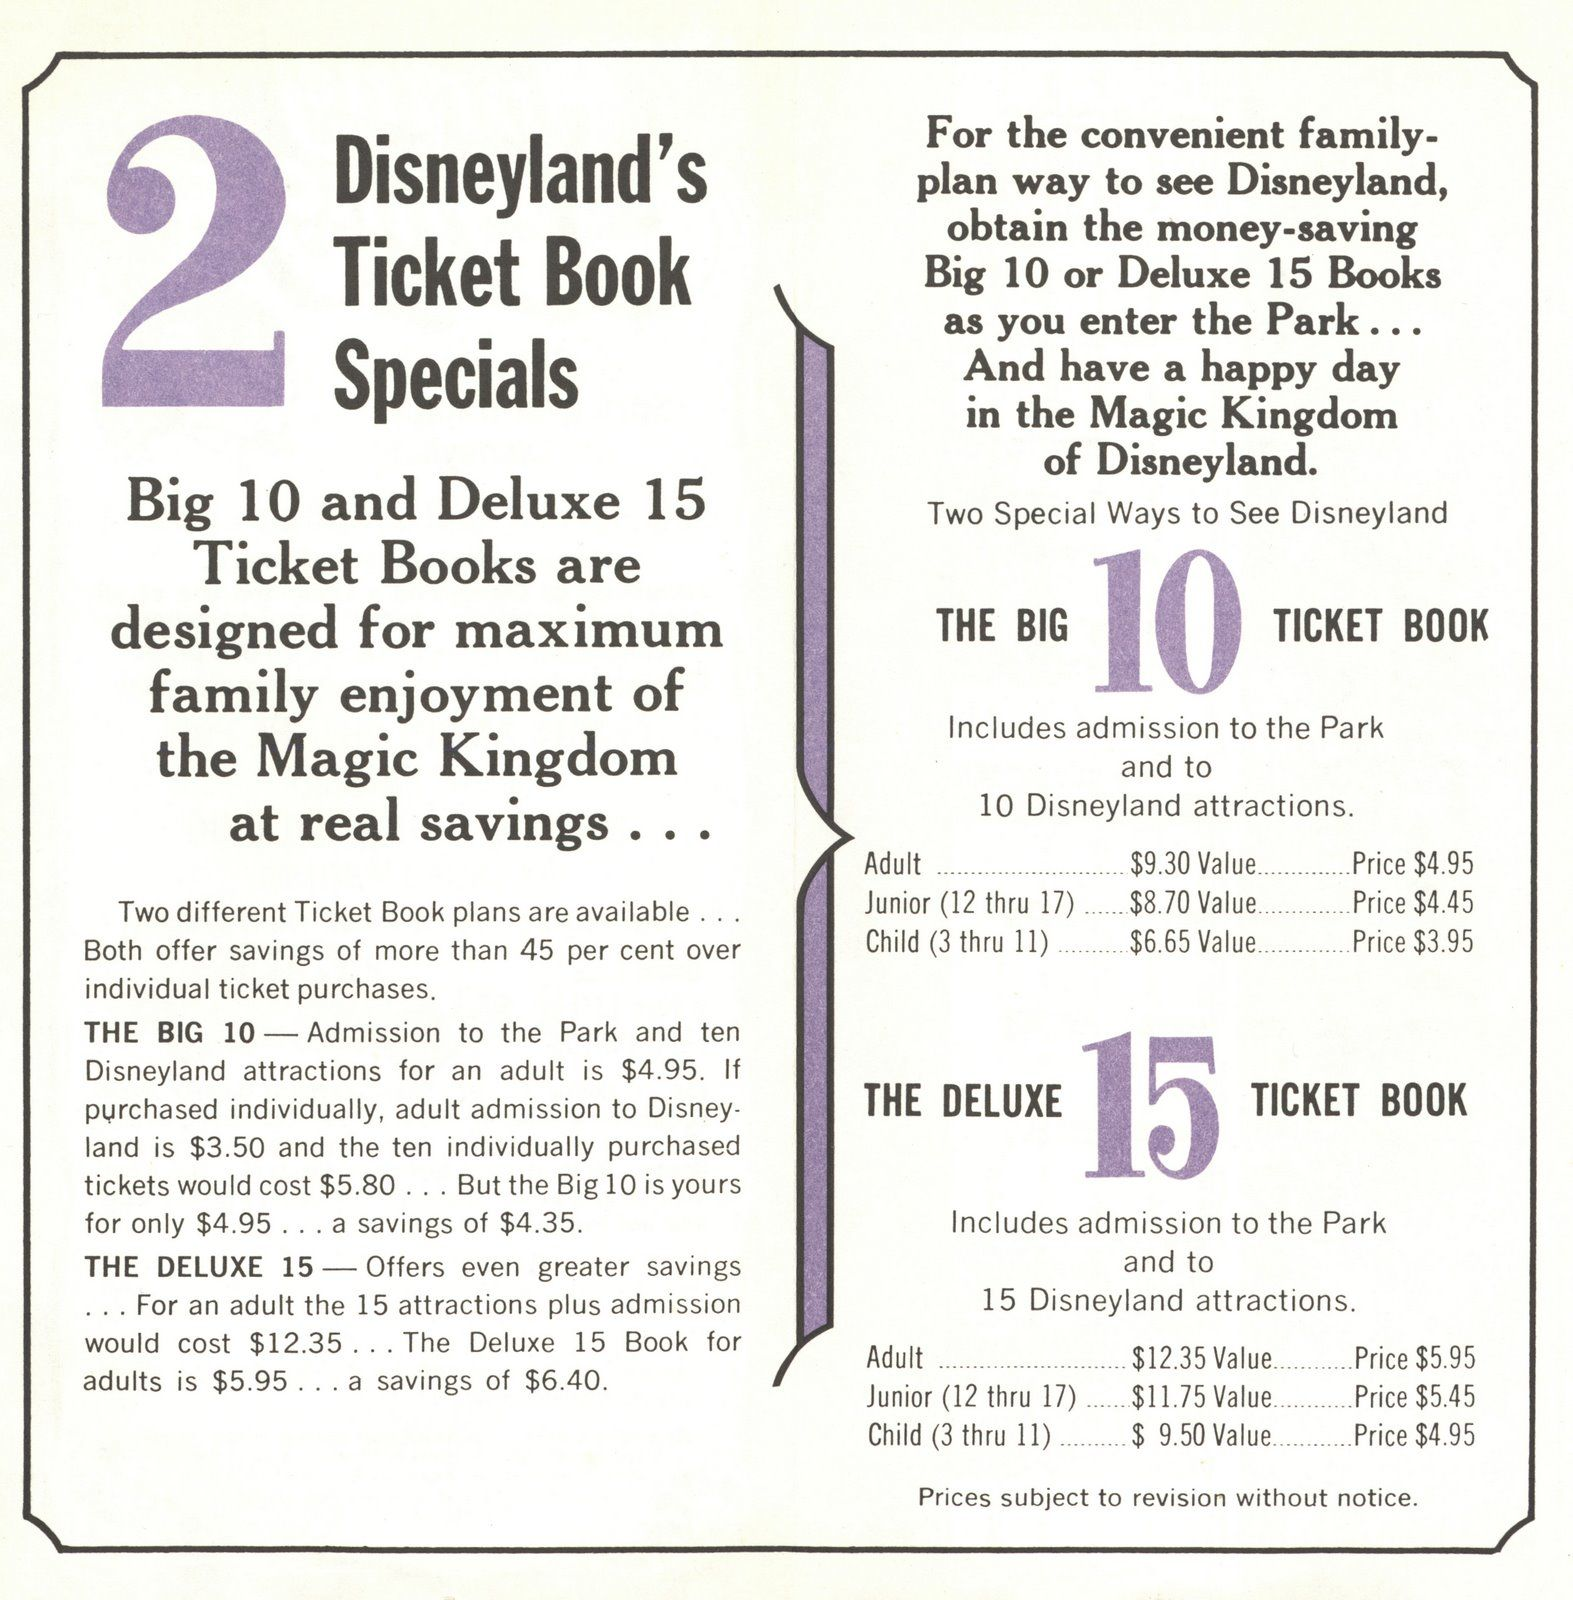 6de7101017557dd67de7fb39b5bd2590 - How Much Is A Ticket To Get Into Disneyland